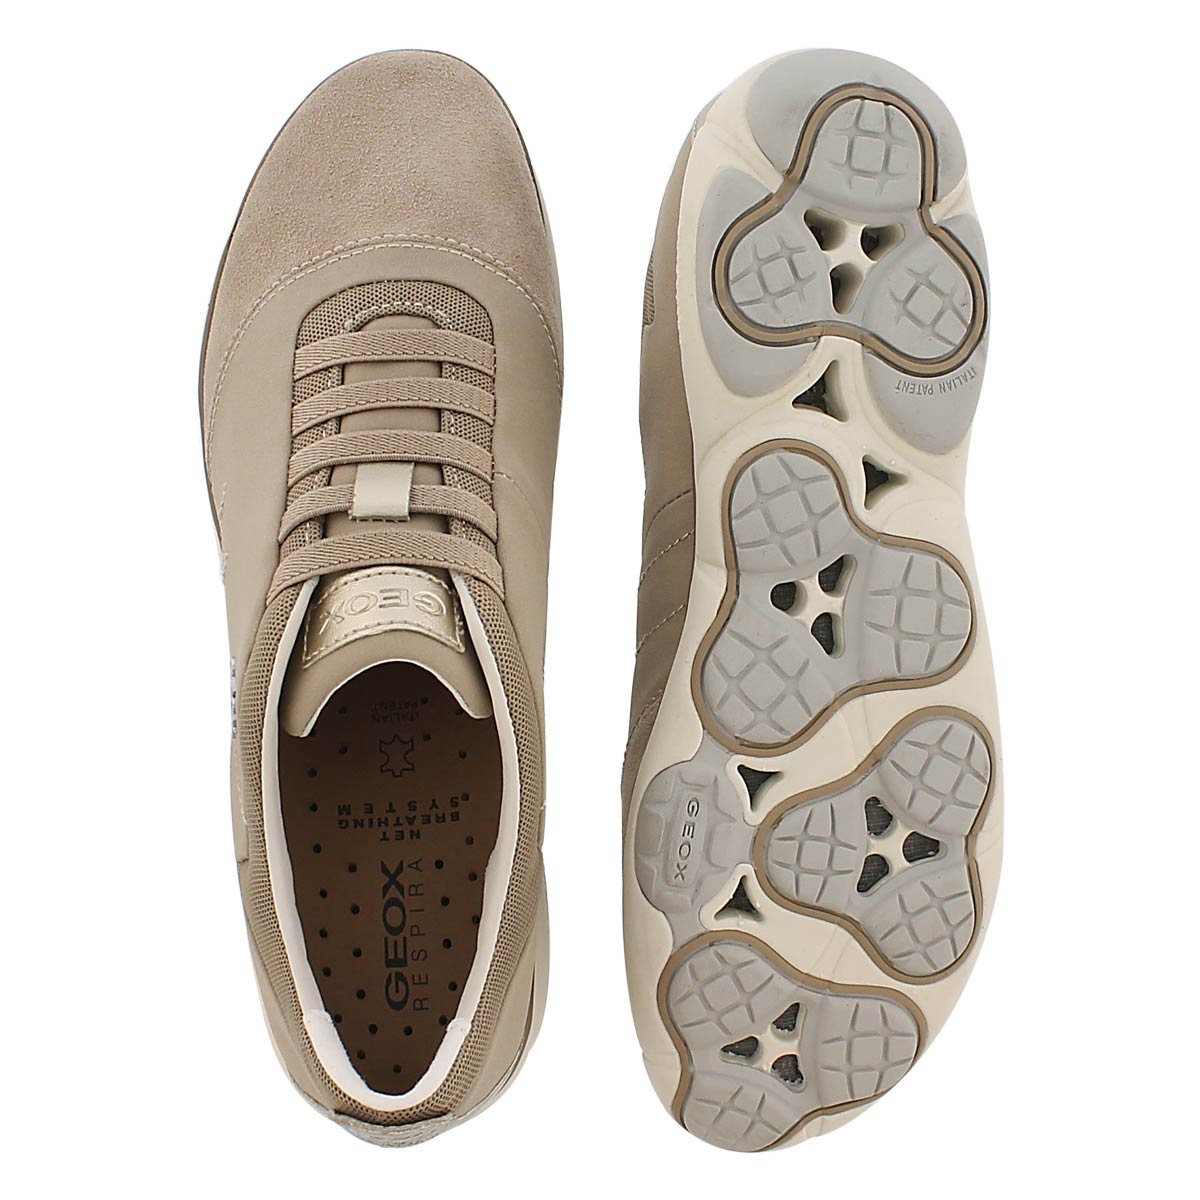 Chaussure de course Nebula, taupe, femme